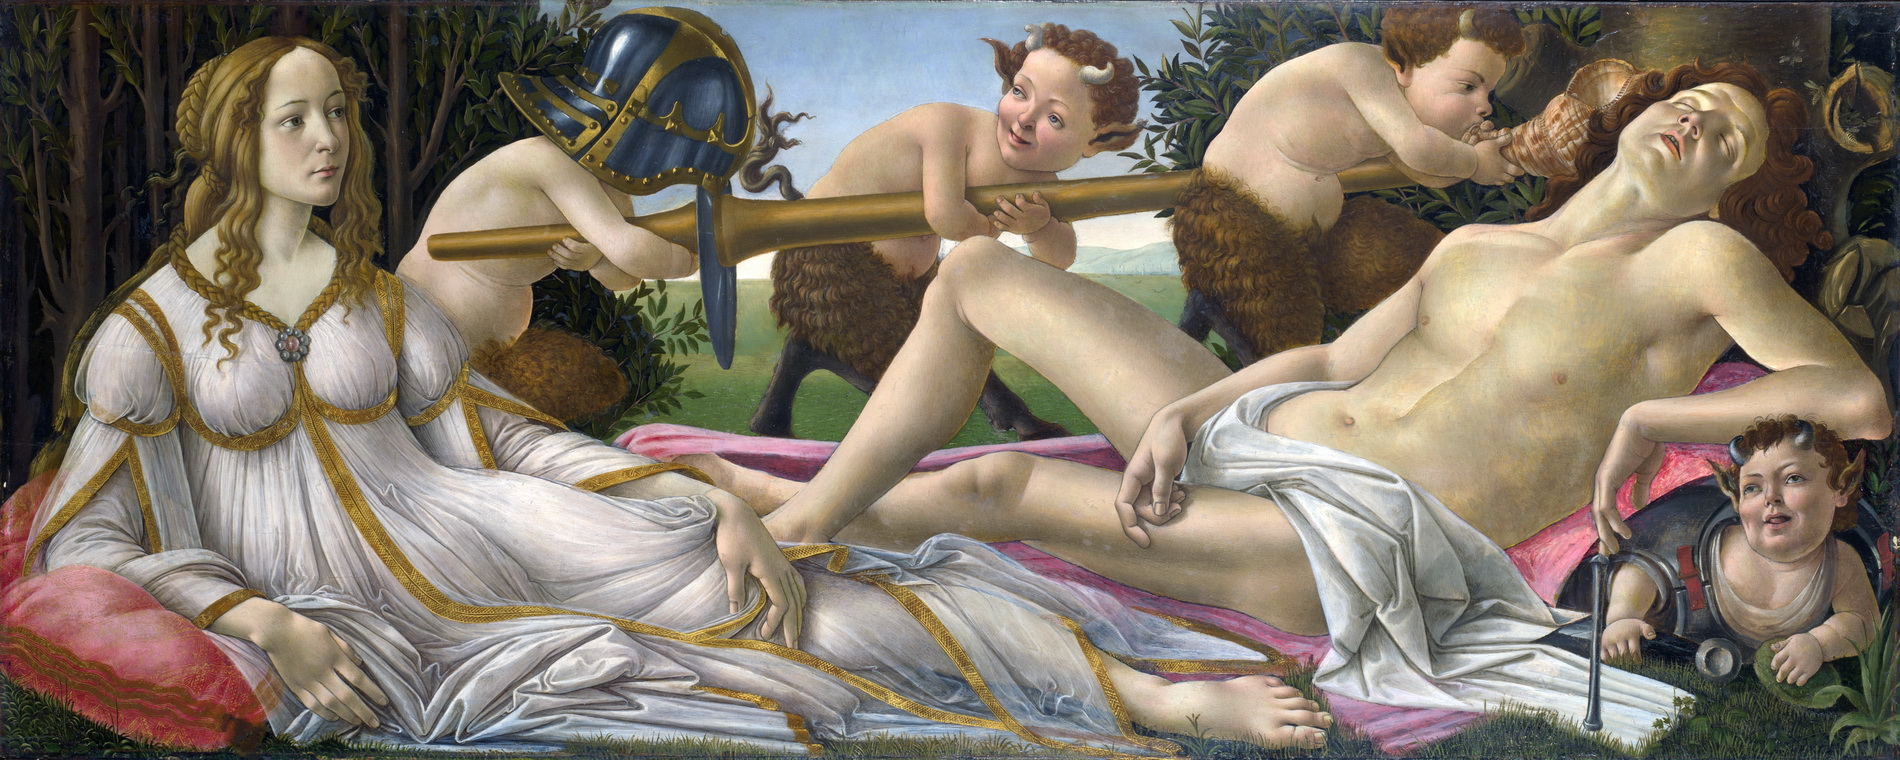 Venus and Mars :: Sandro Botticelli  - Fantasy in art and painting ôîòî